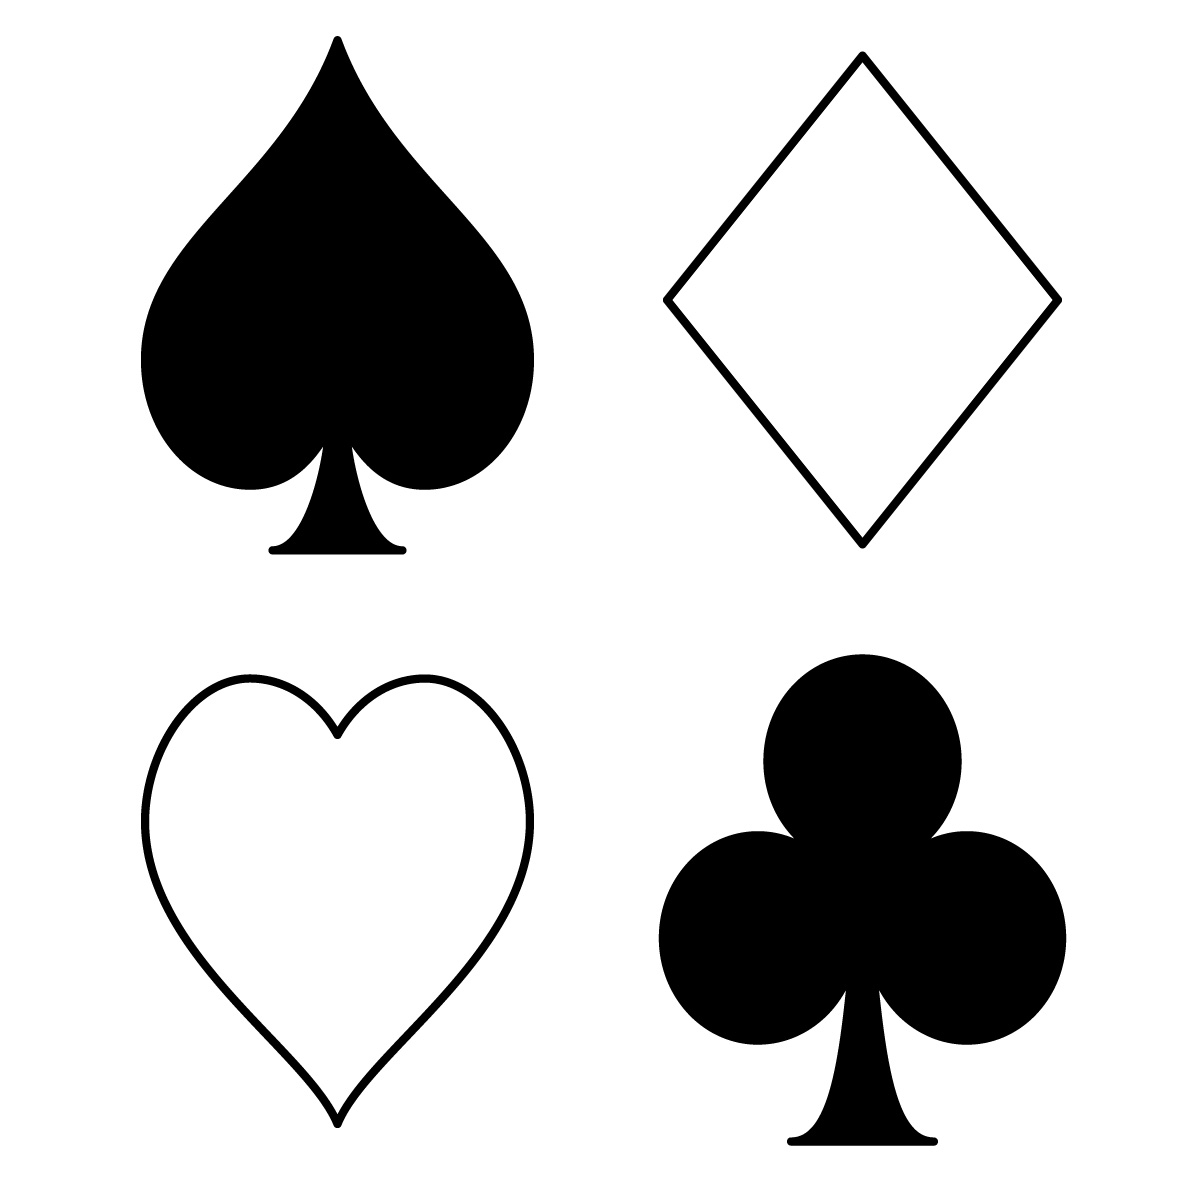 Ace card clip art image free library Ace Playing Card Clipart - Clipart Kid image free library